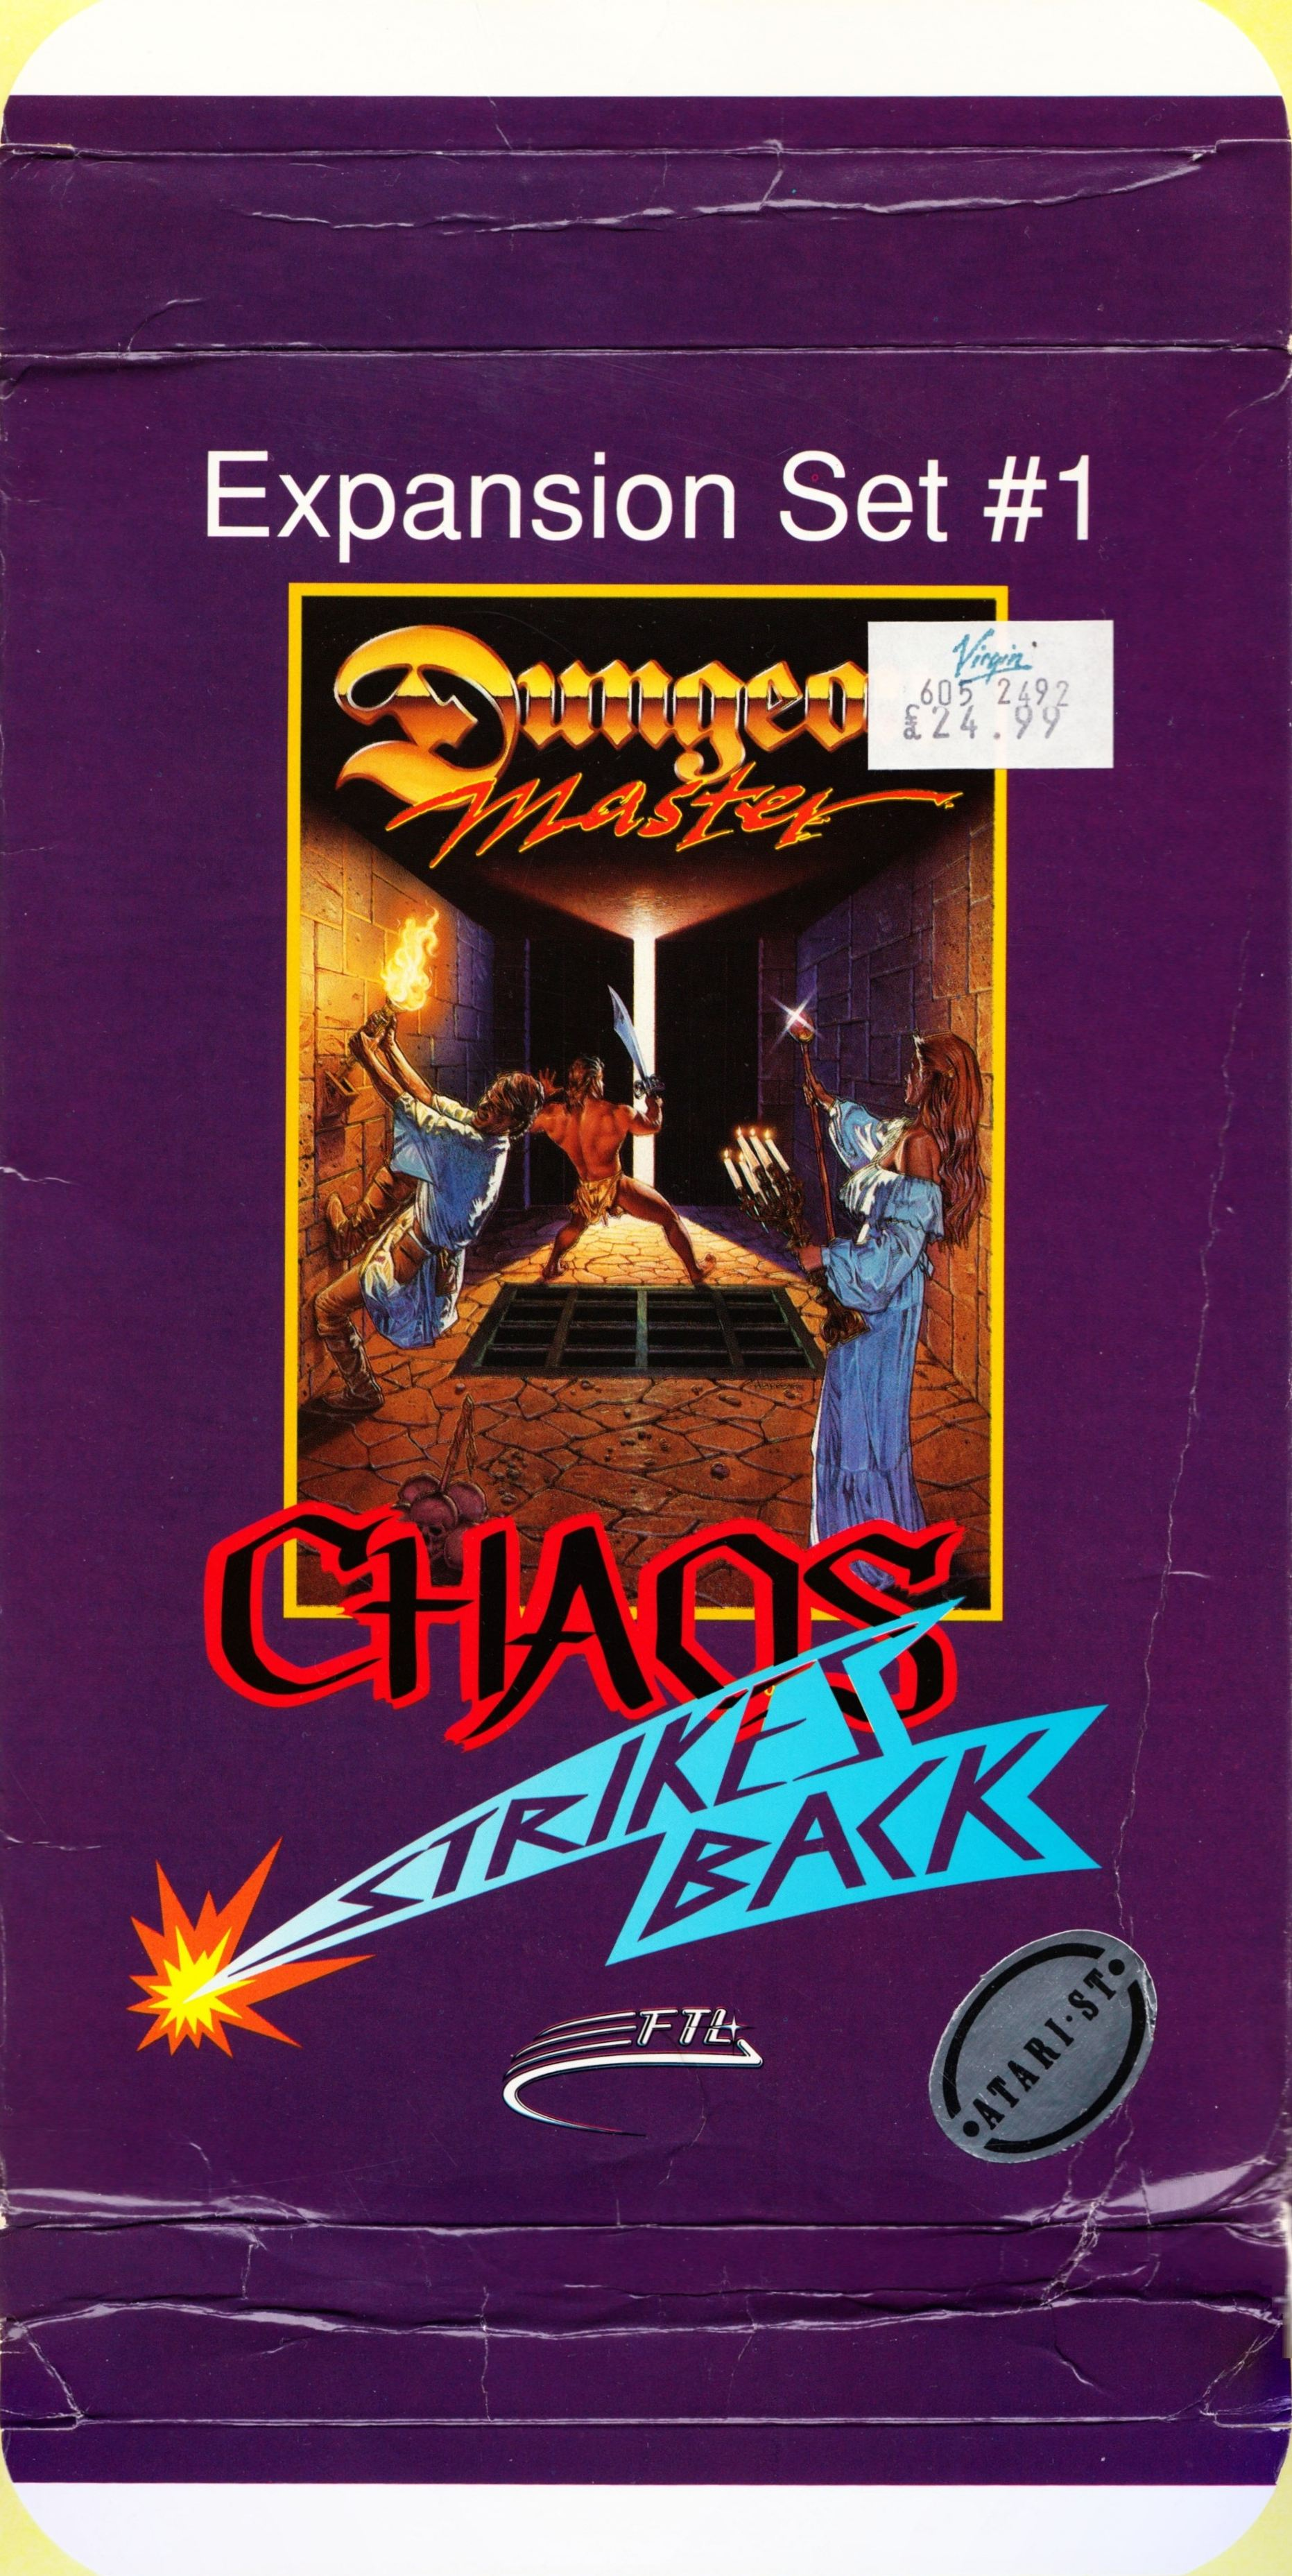 Game - Chaos Strikes Back - UK - Atari ST - Box - Front Top Bottom - Scan